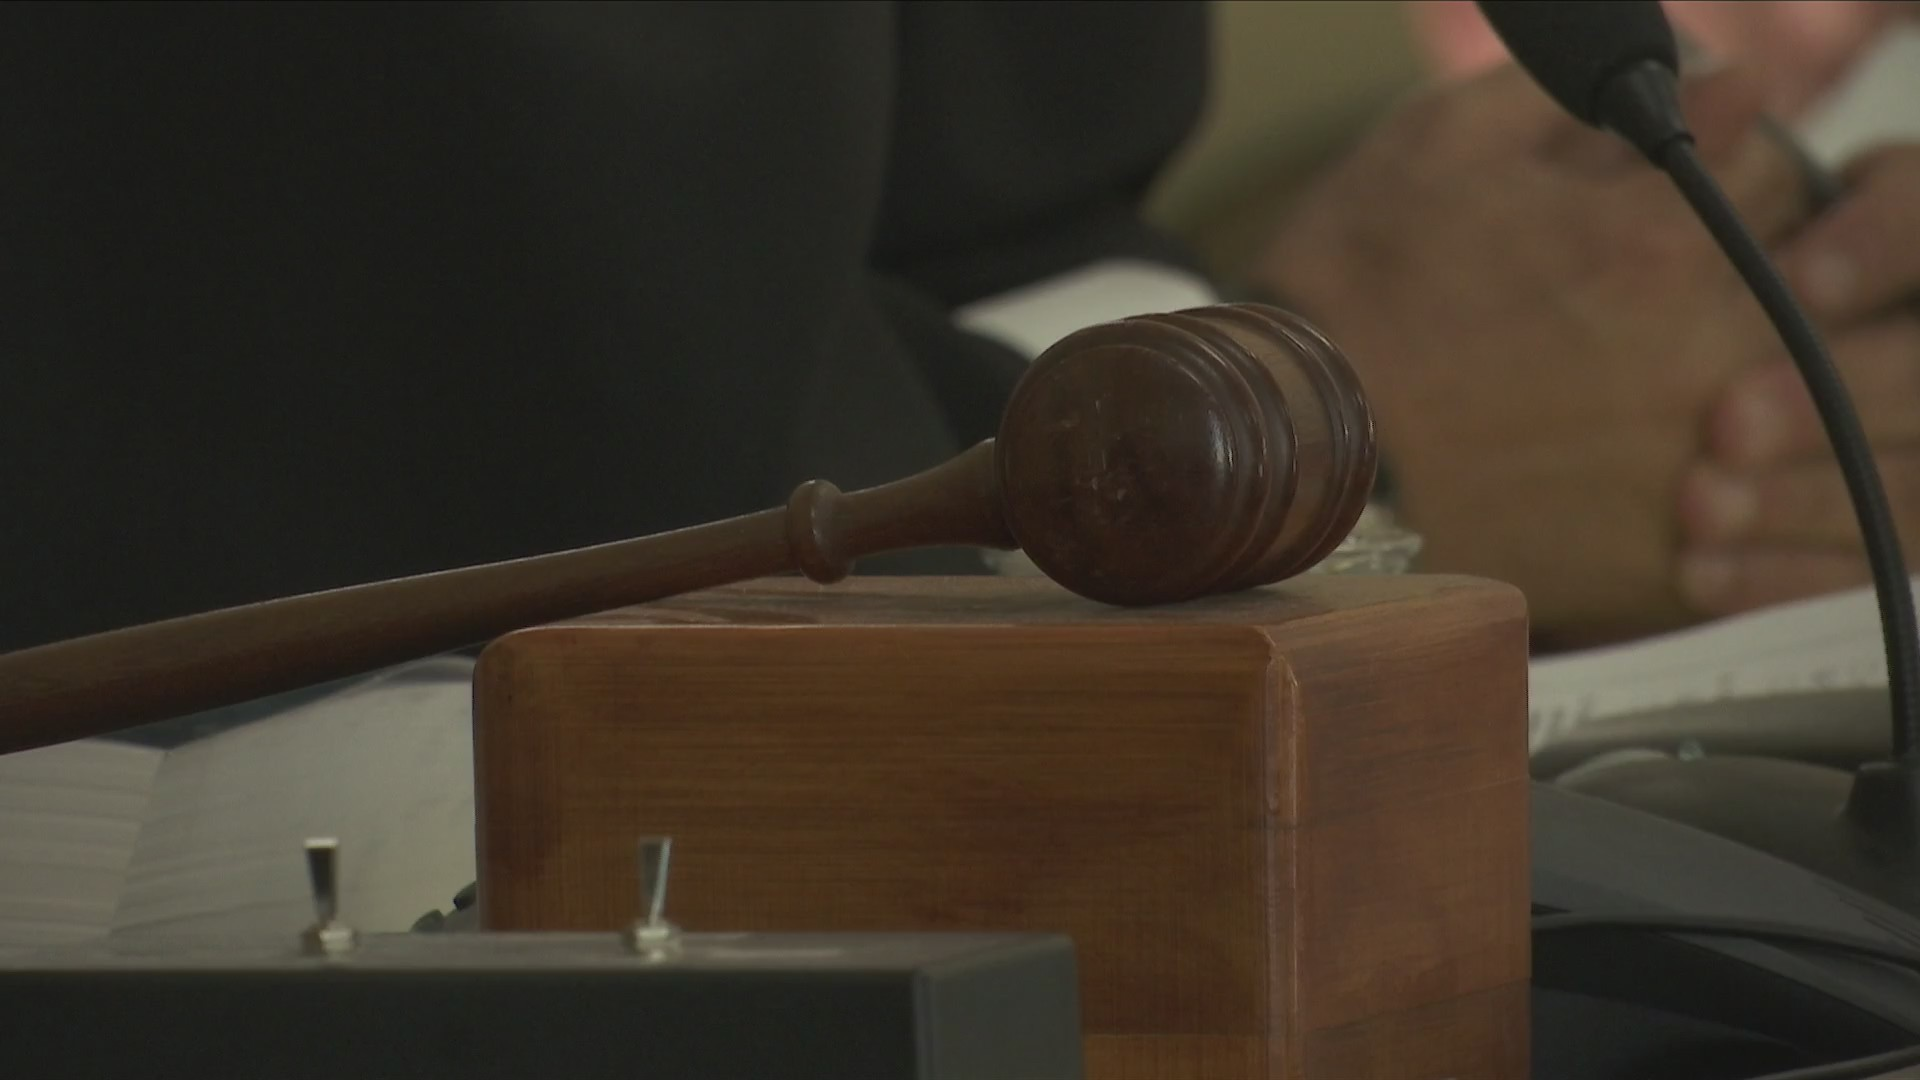 Caden Charnetski Trial: Day four of the bench trial continues on with more testimonies